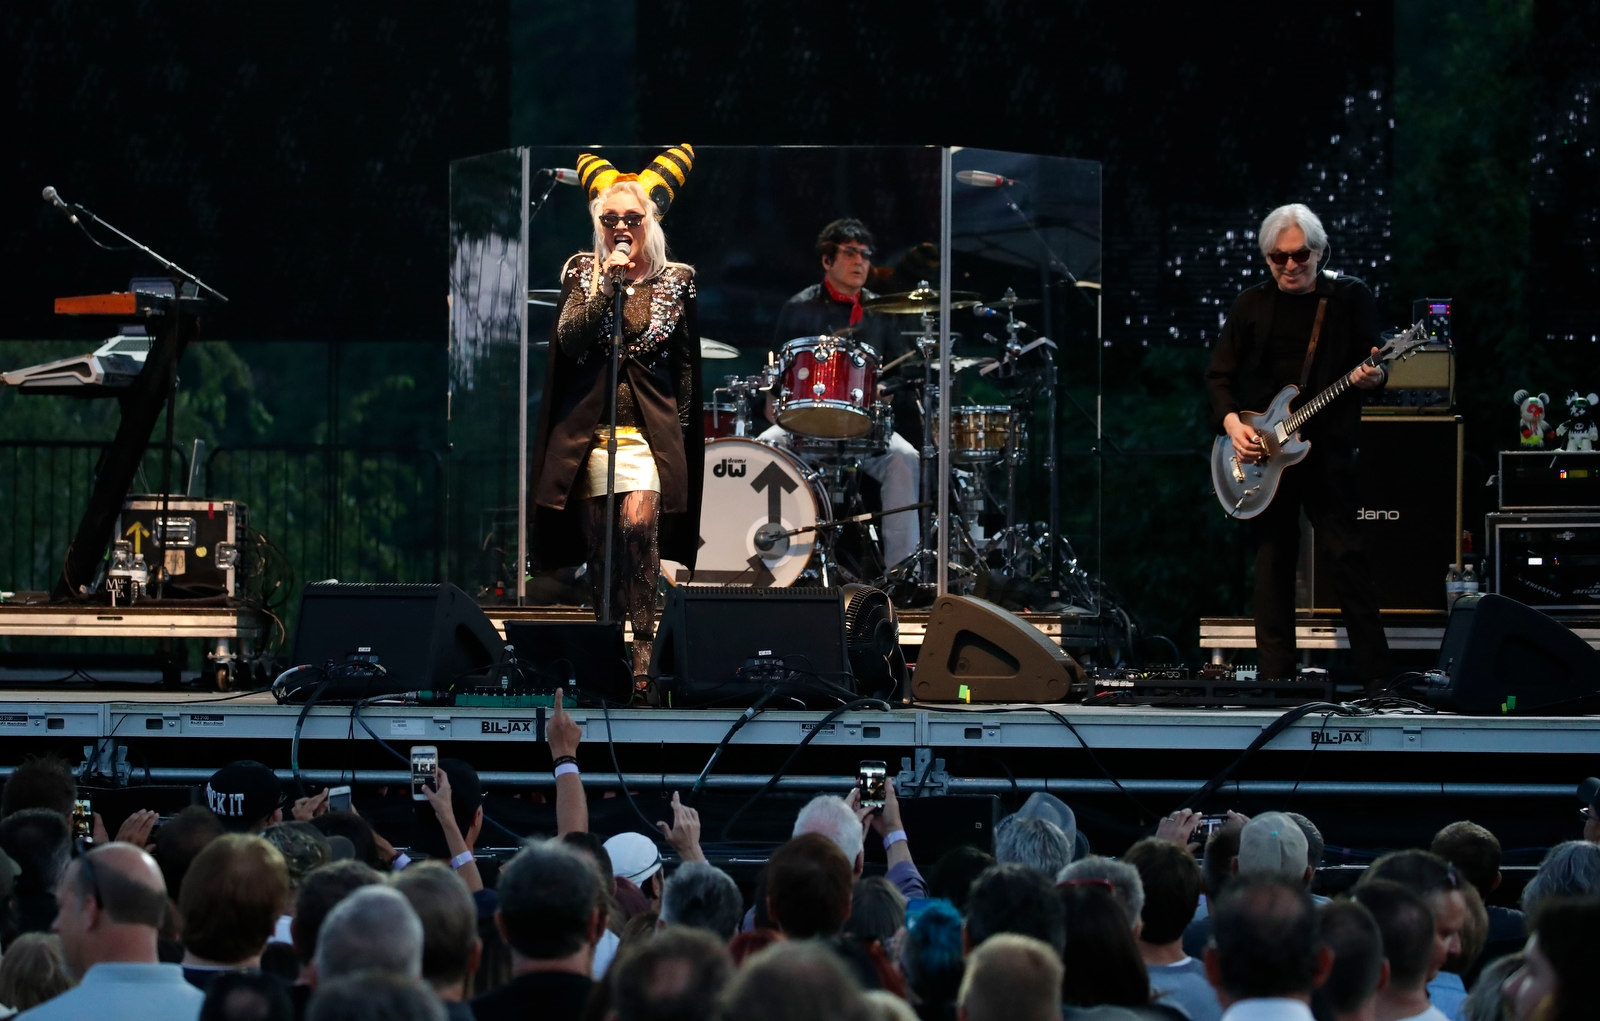 Blondie performs for 7,000 people at Artpark.